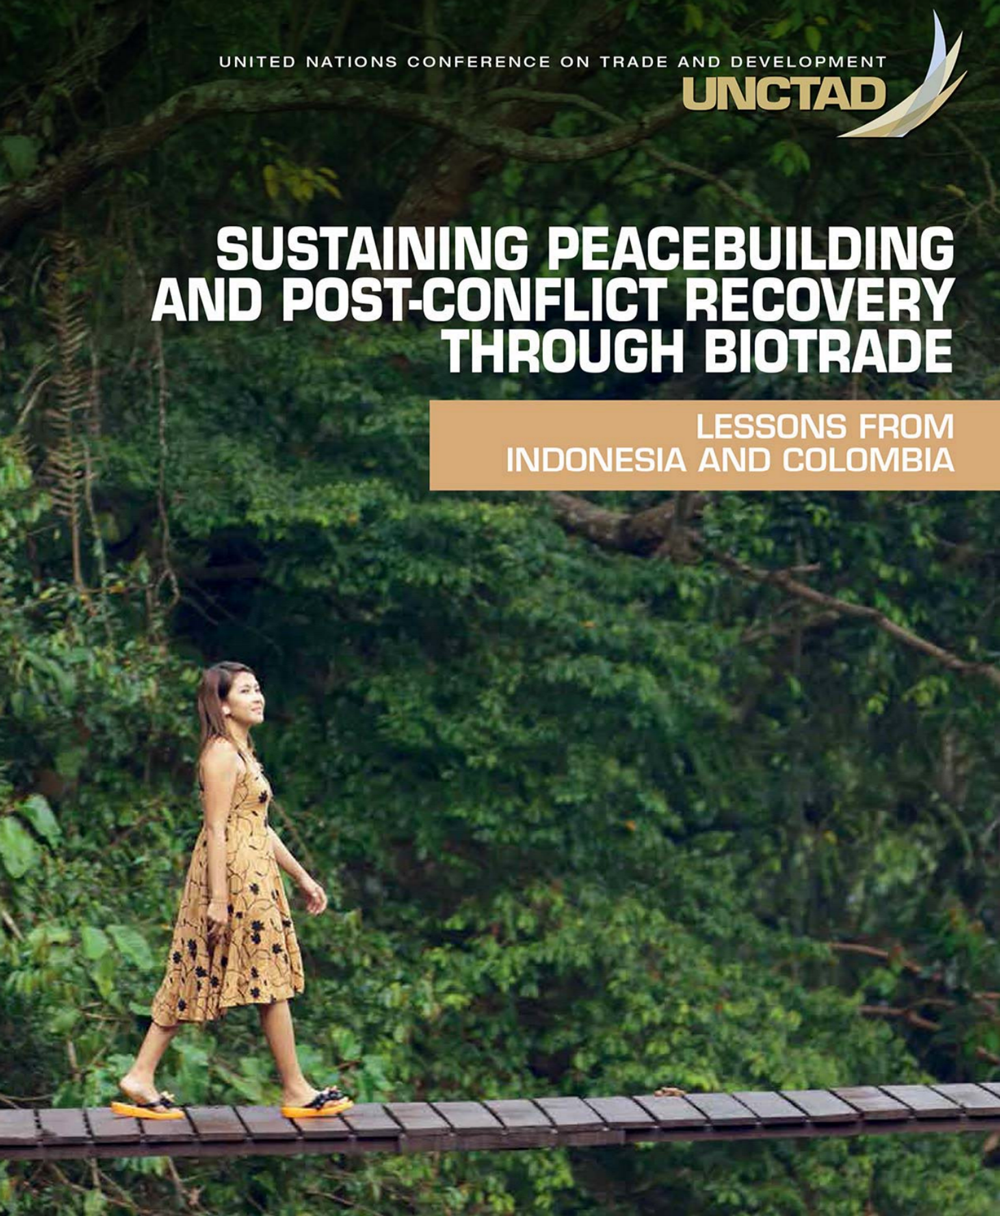 Sustaining peacebuilding and port-conflict recovery through biotrade